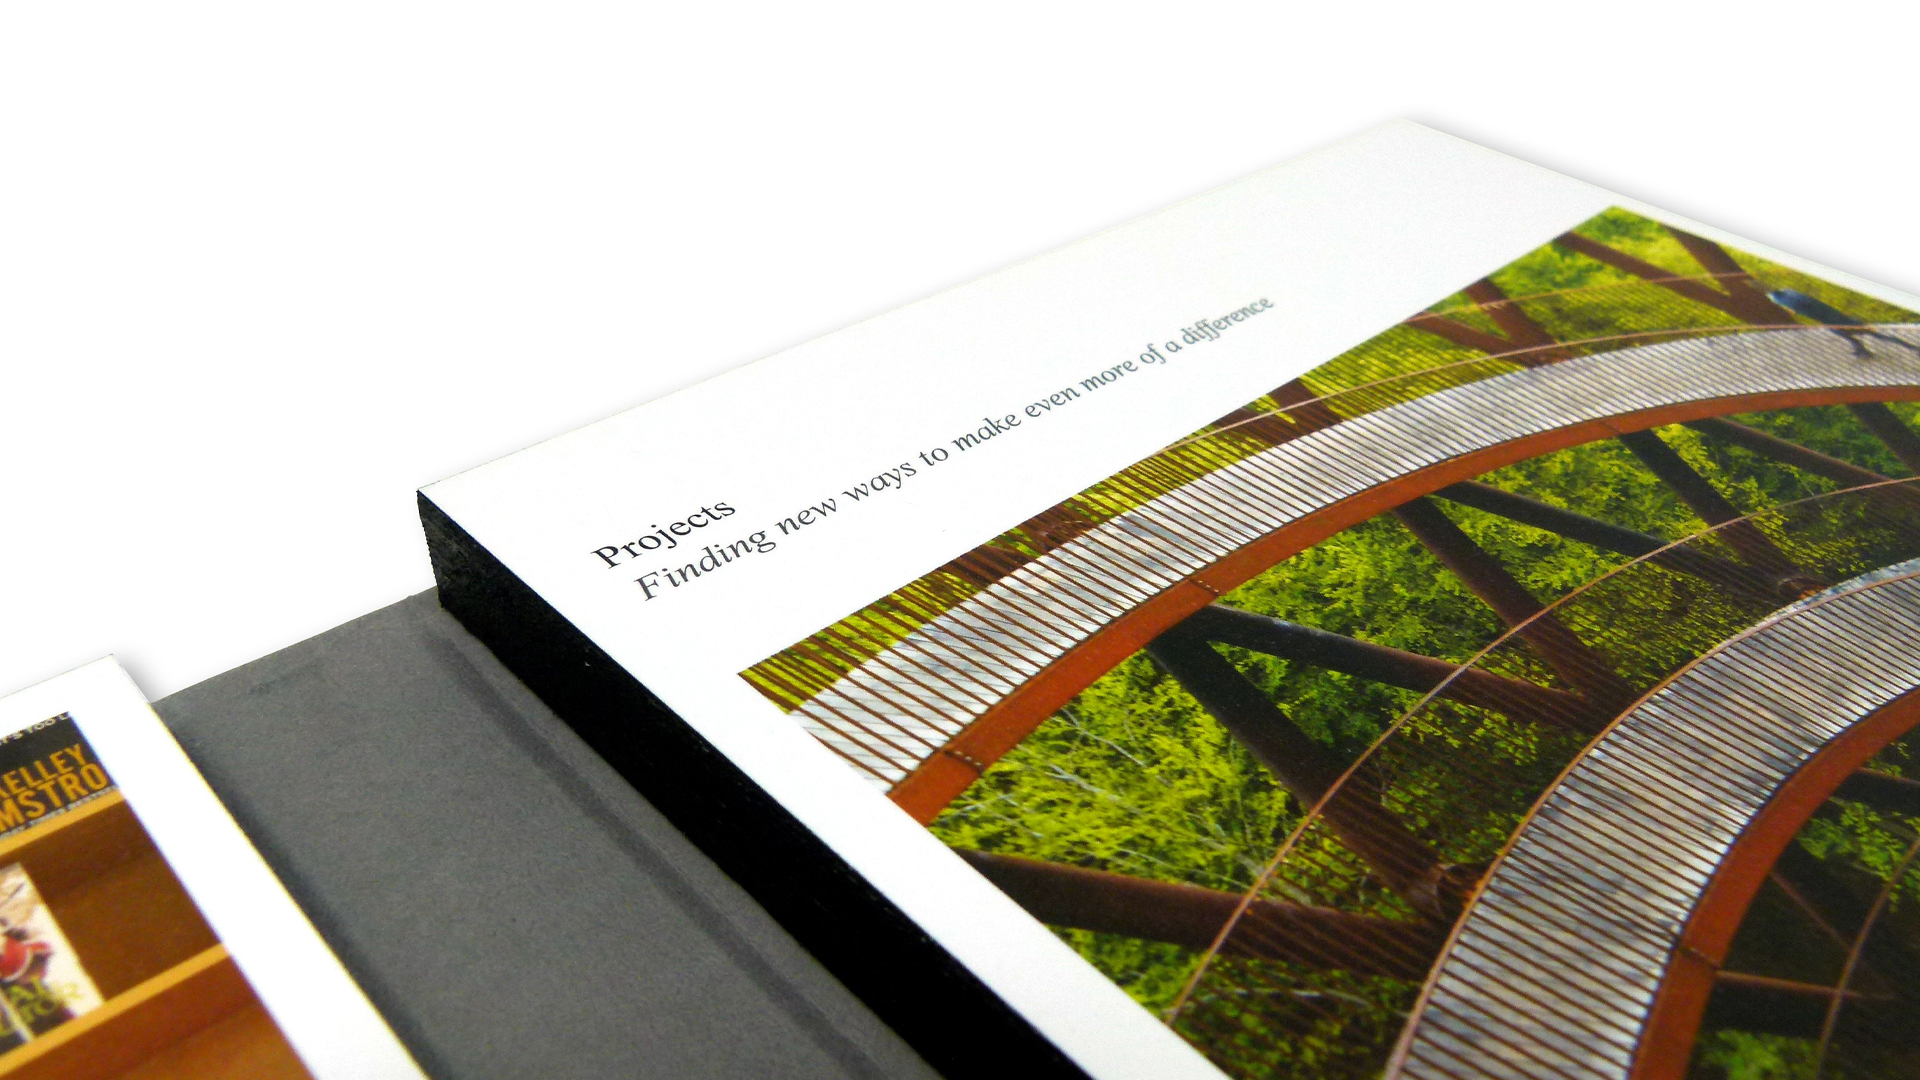 Arup 2019 Annual Report - PaperSpecs